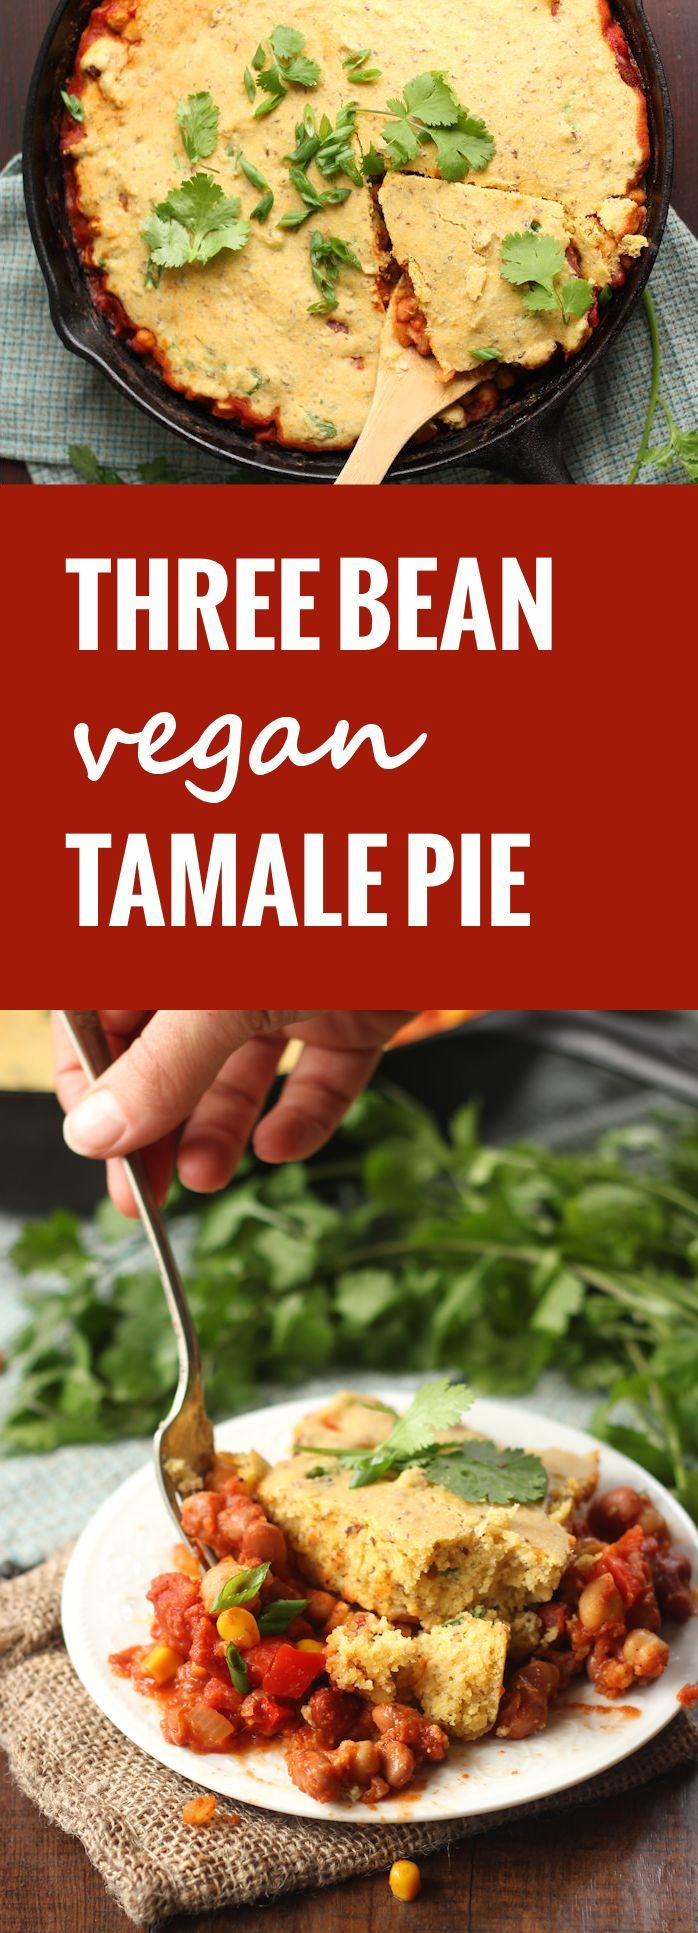 This Vegan Tamale Pie Is Made With A Mixture Of Chickpeas